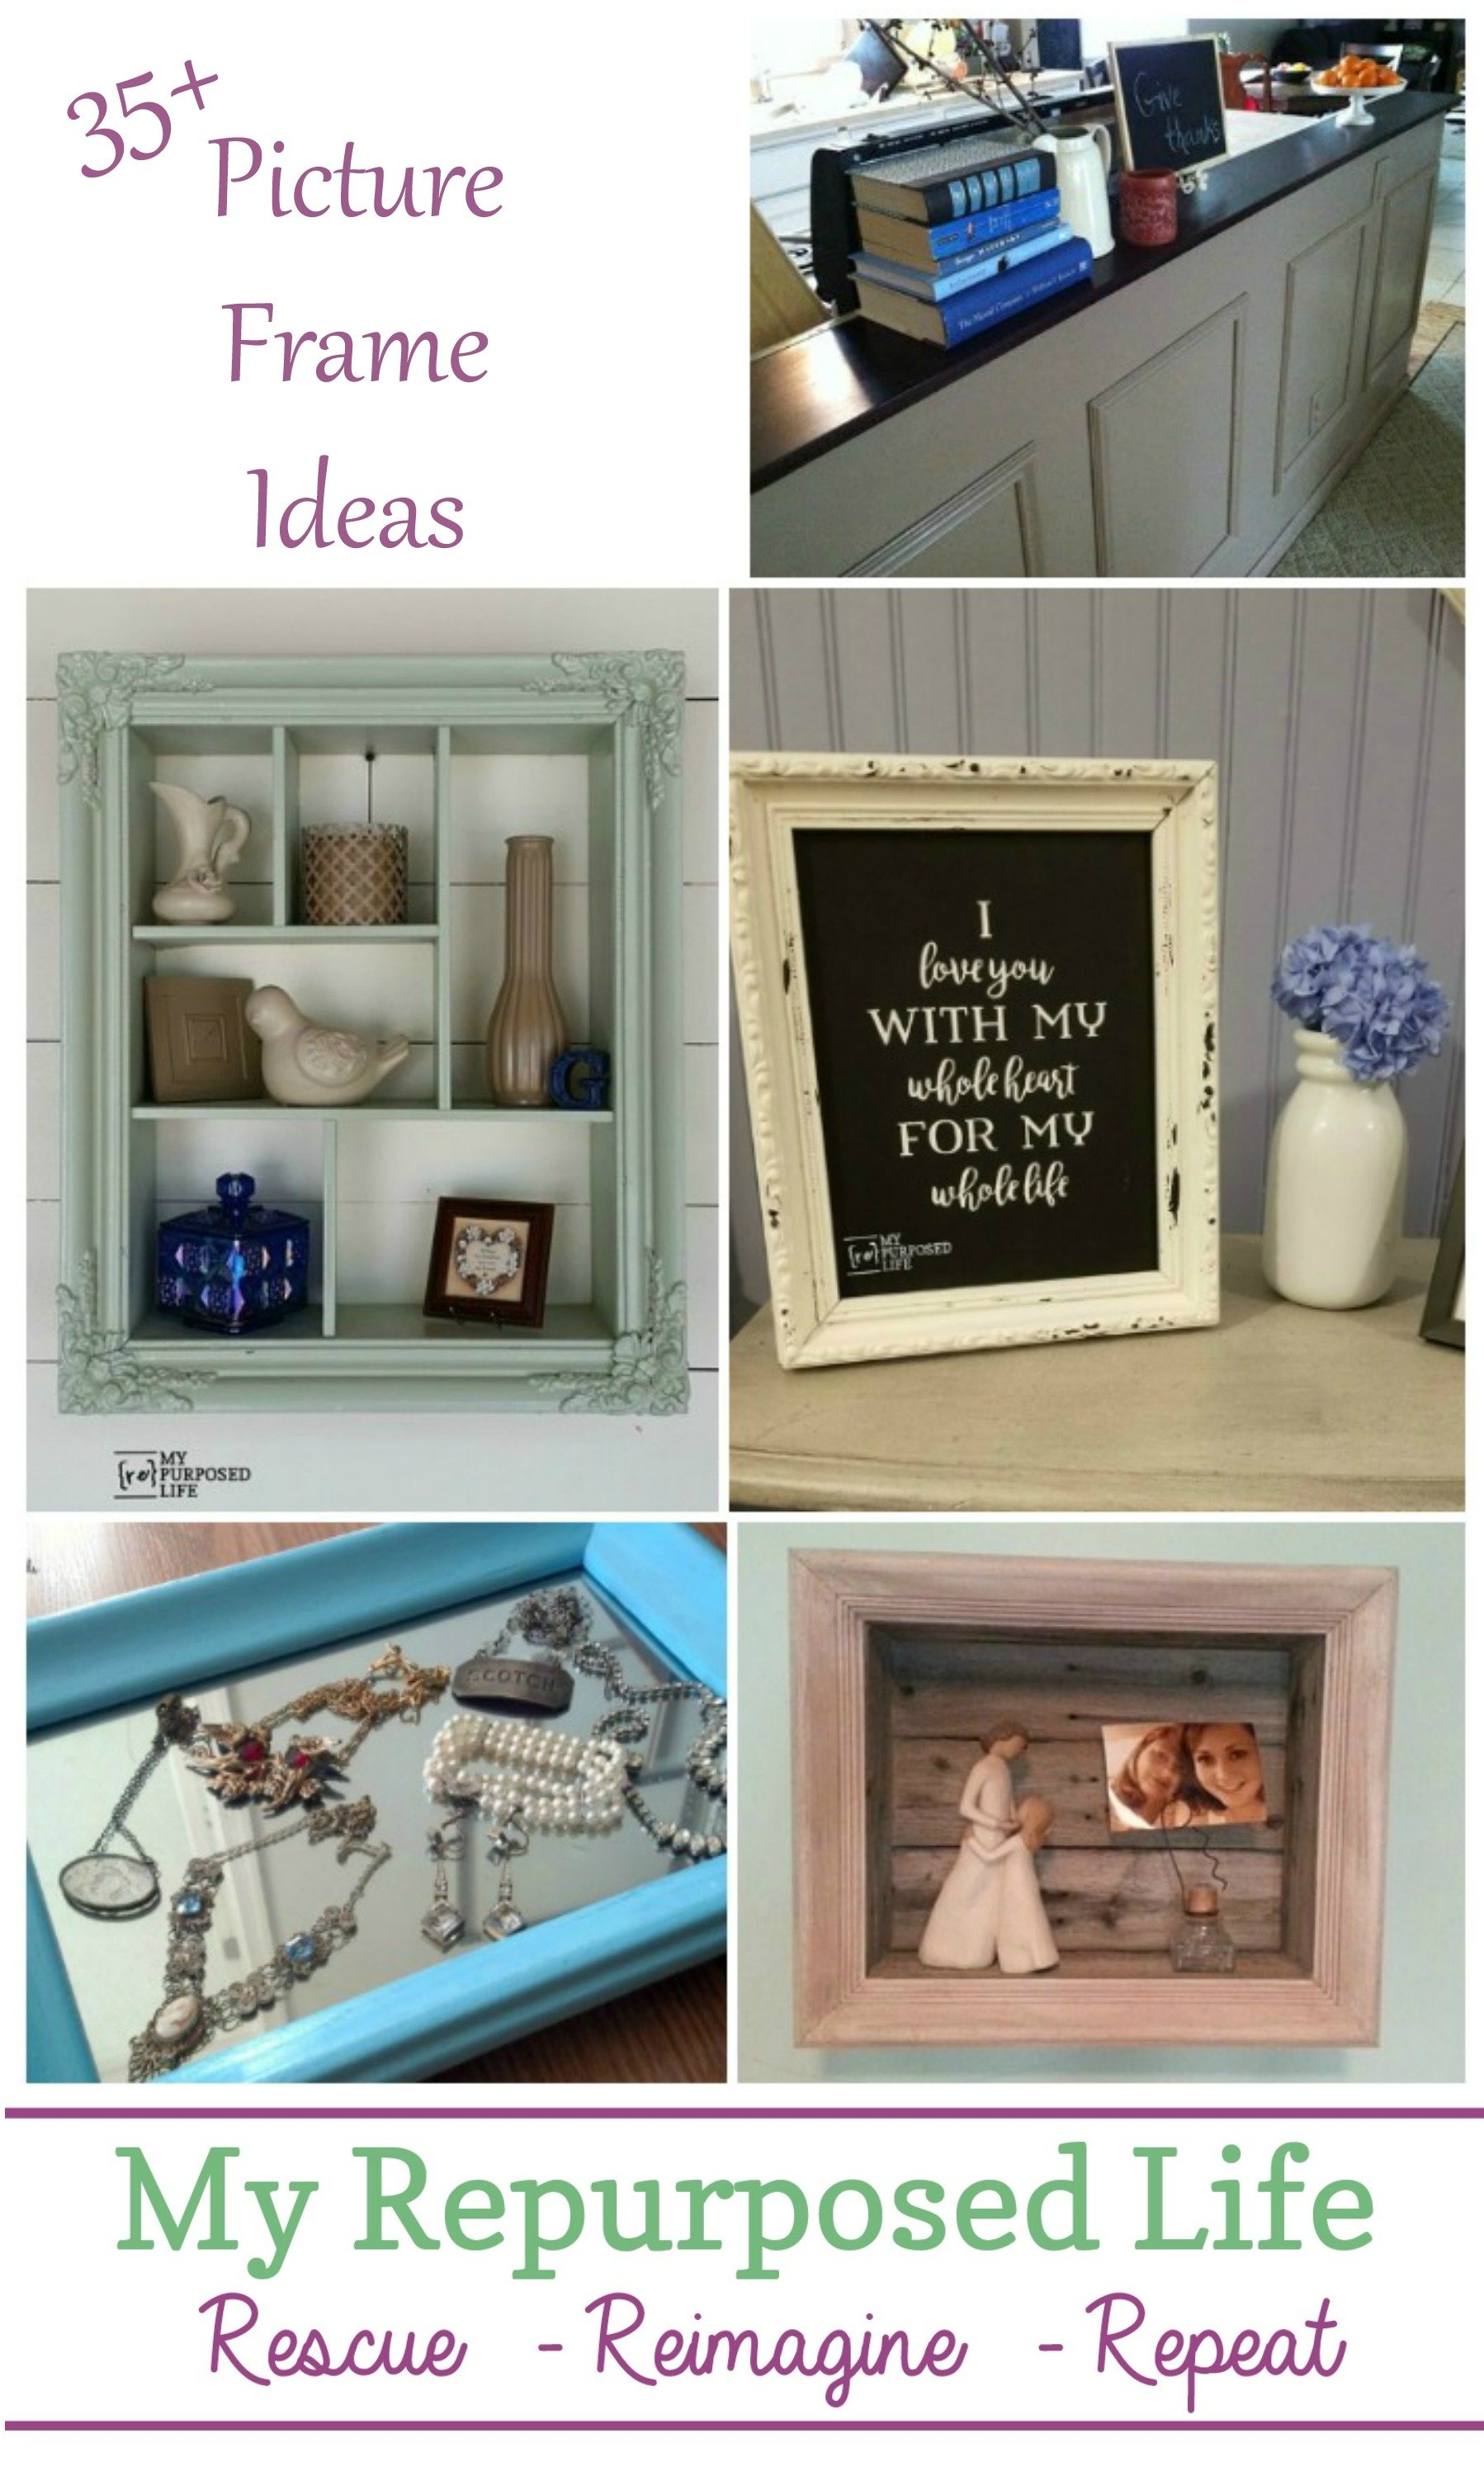 This roundup of picture frame ideas will give you lots of inspiration and ways to repurpose those thrift store picture frames you have hanging around. #MyRepurposedLife #repurposed #picture #frames via @repurposedlife